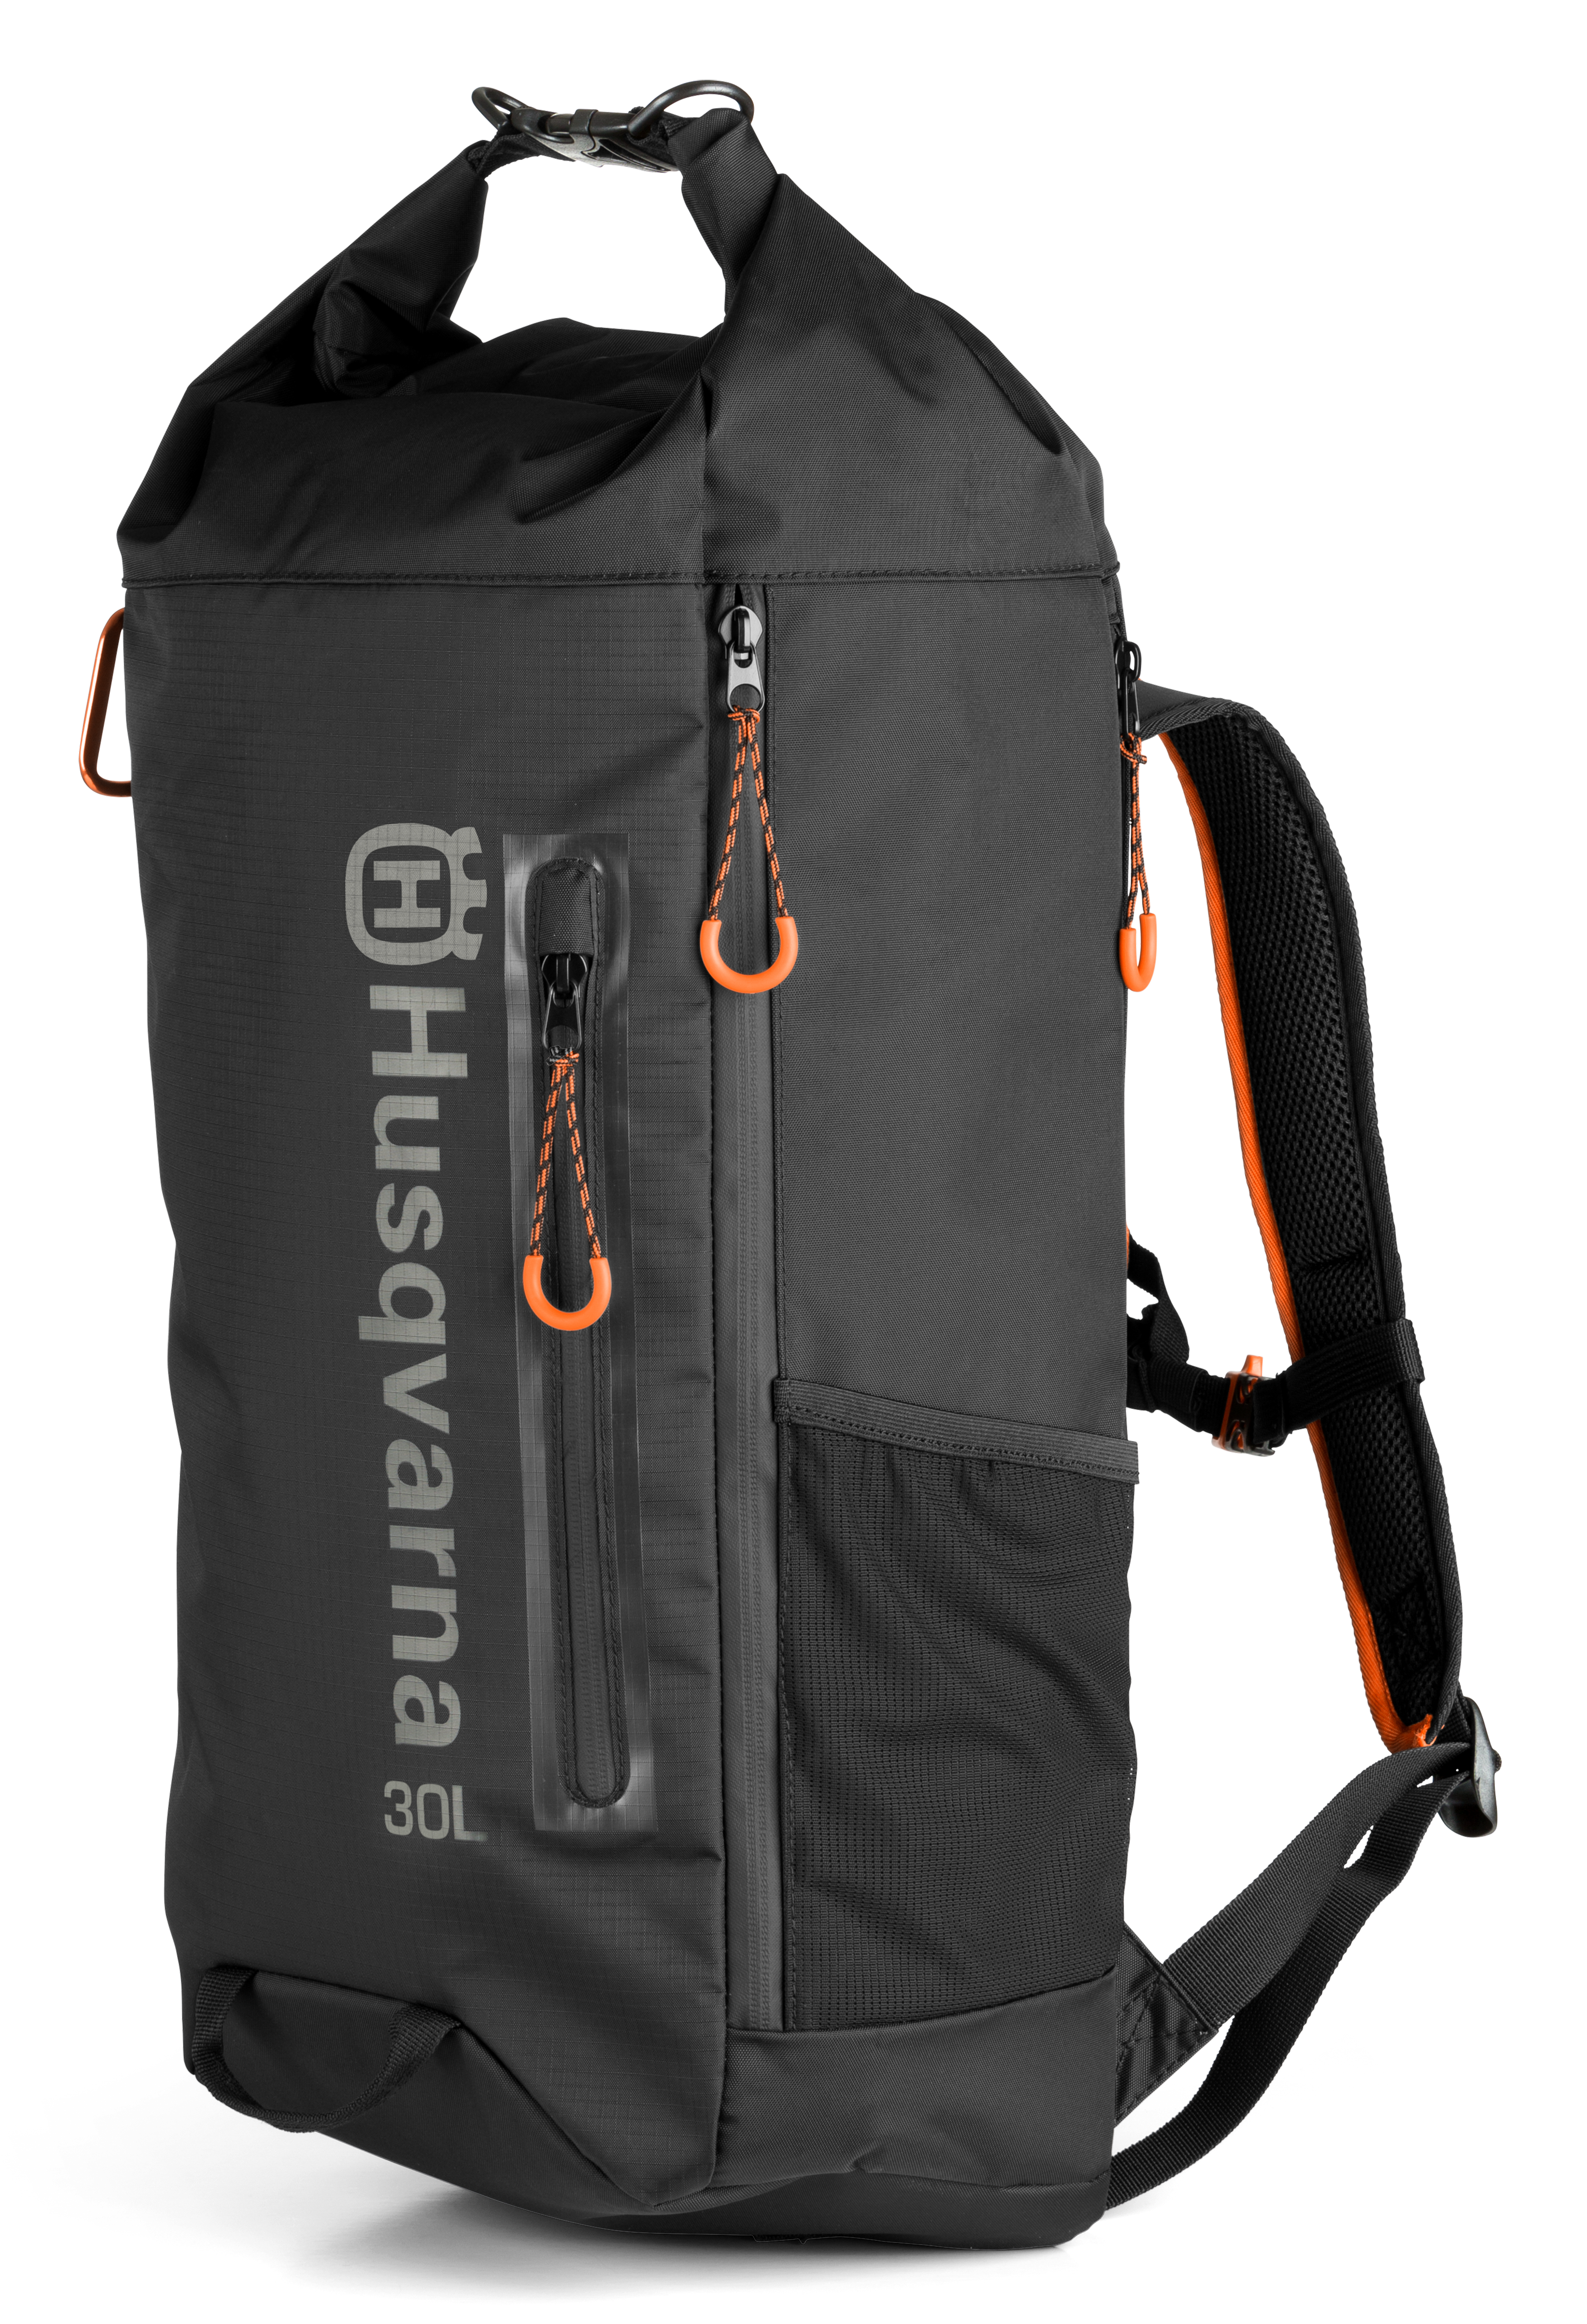 Image for Xplorer Backpack                                                                                                                 from HusqvarnaB2C